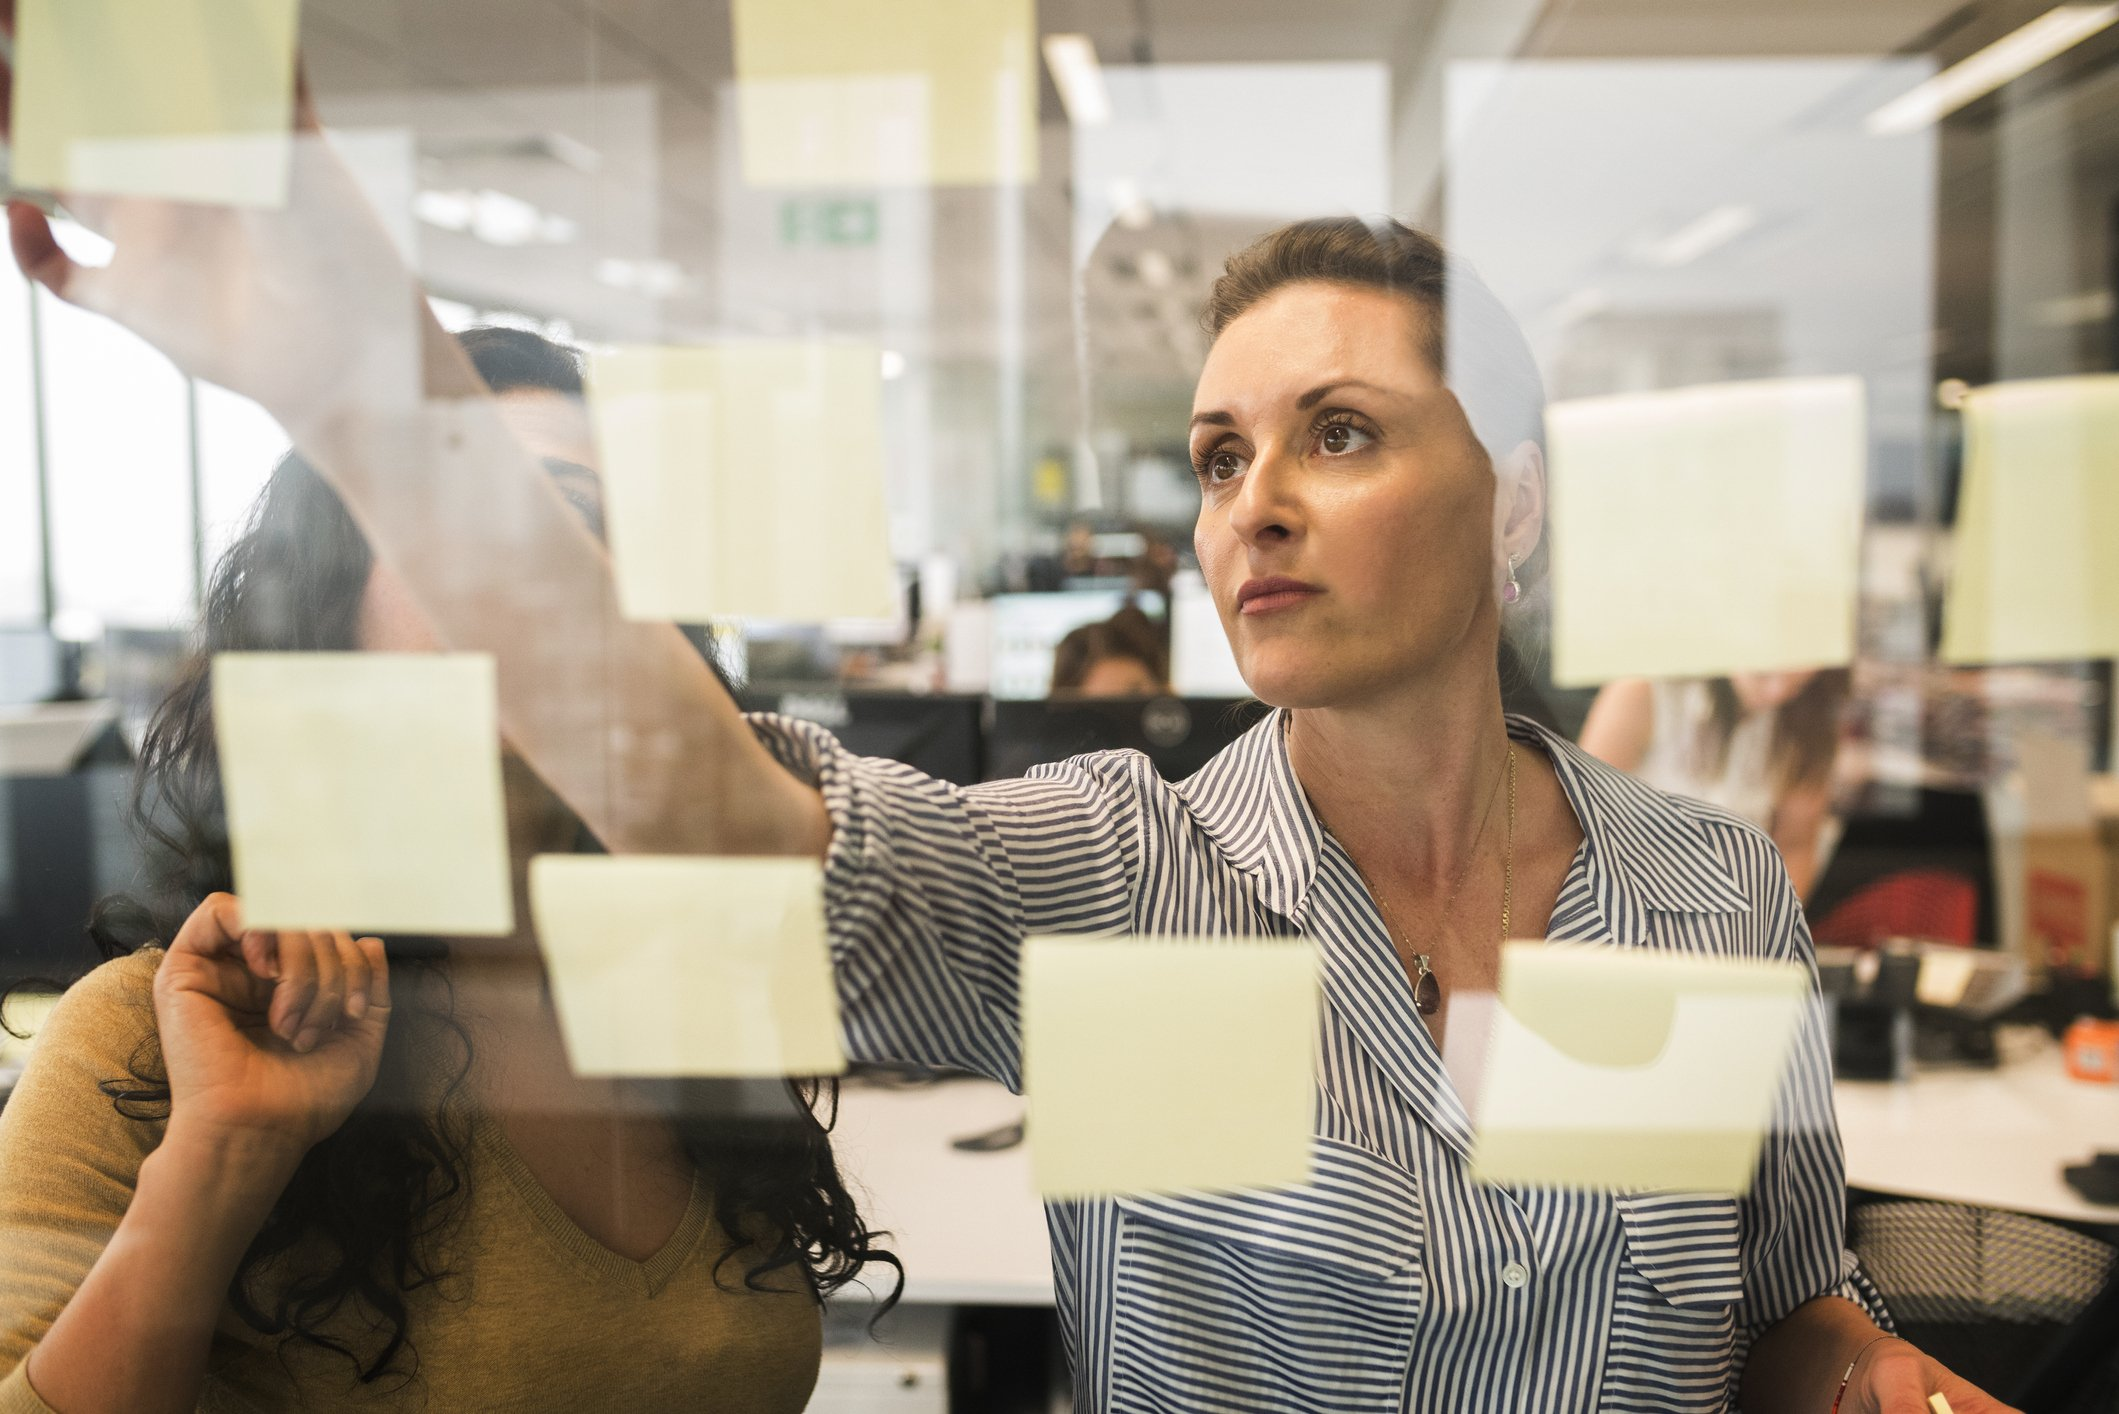 Sales – Lose the sticky notes and get yourself a CRM system.